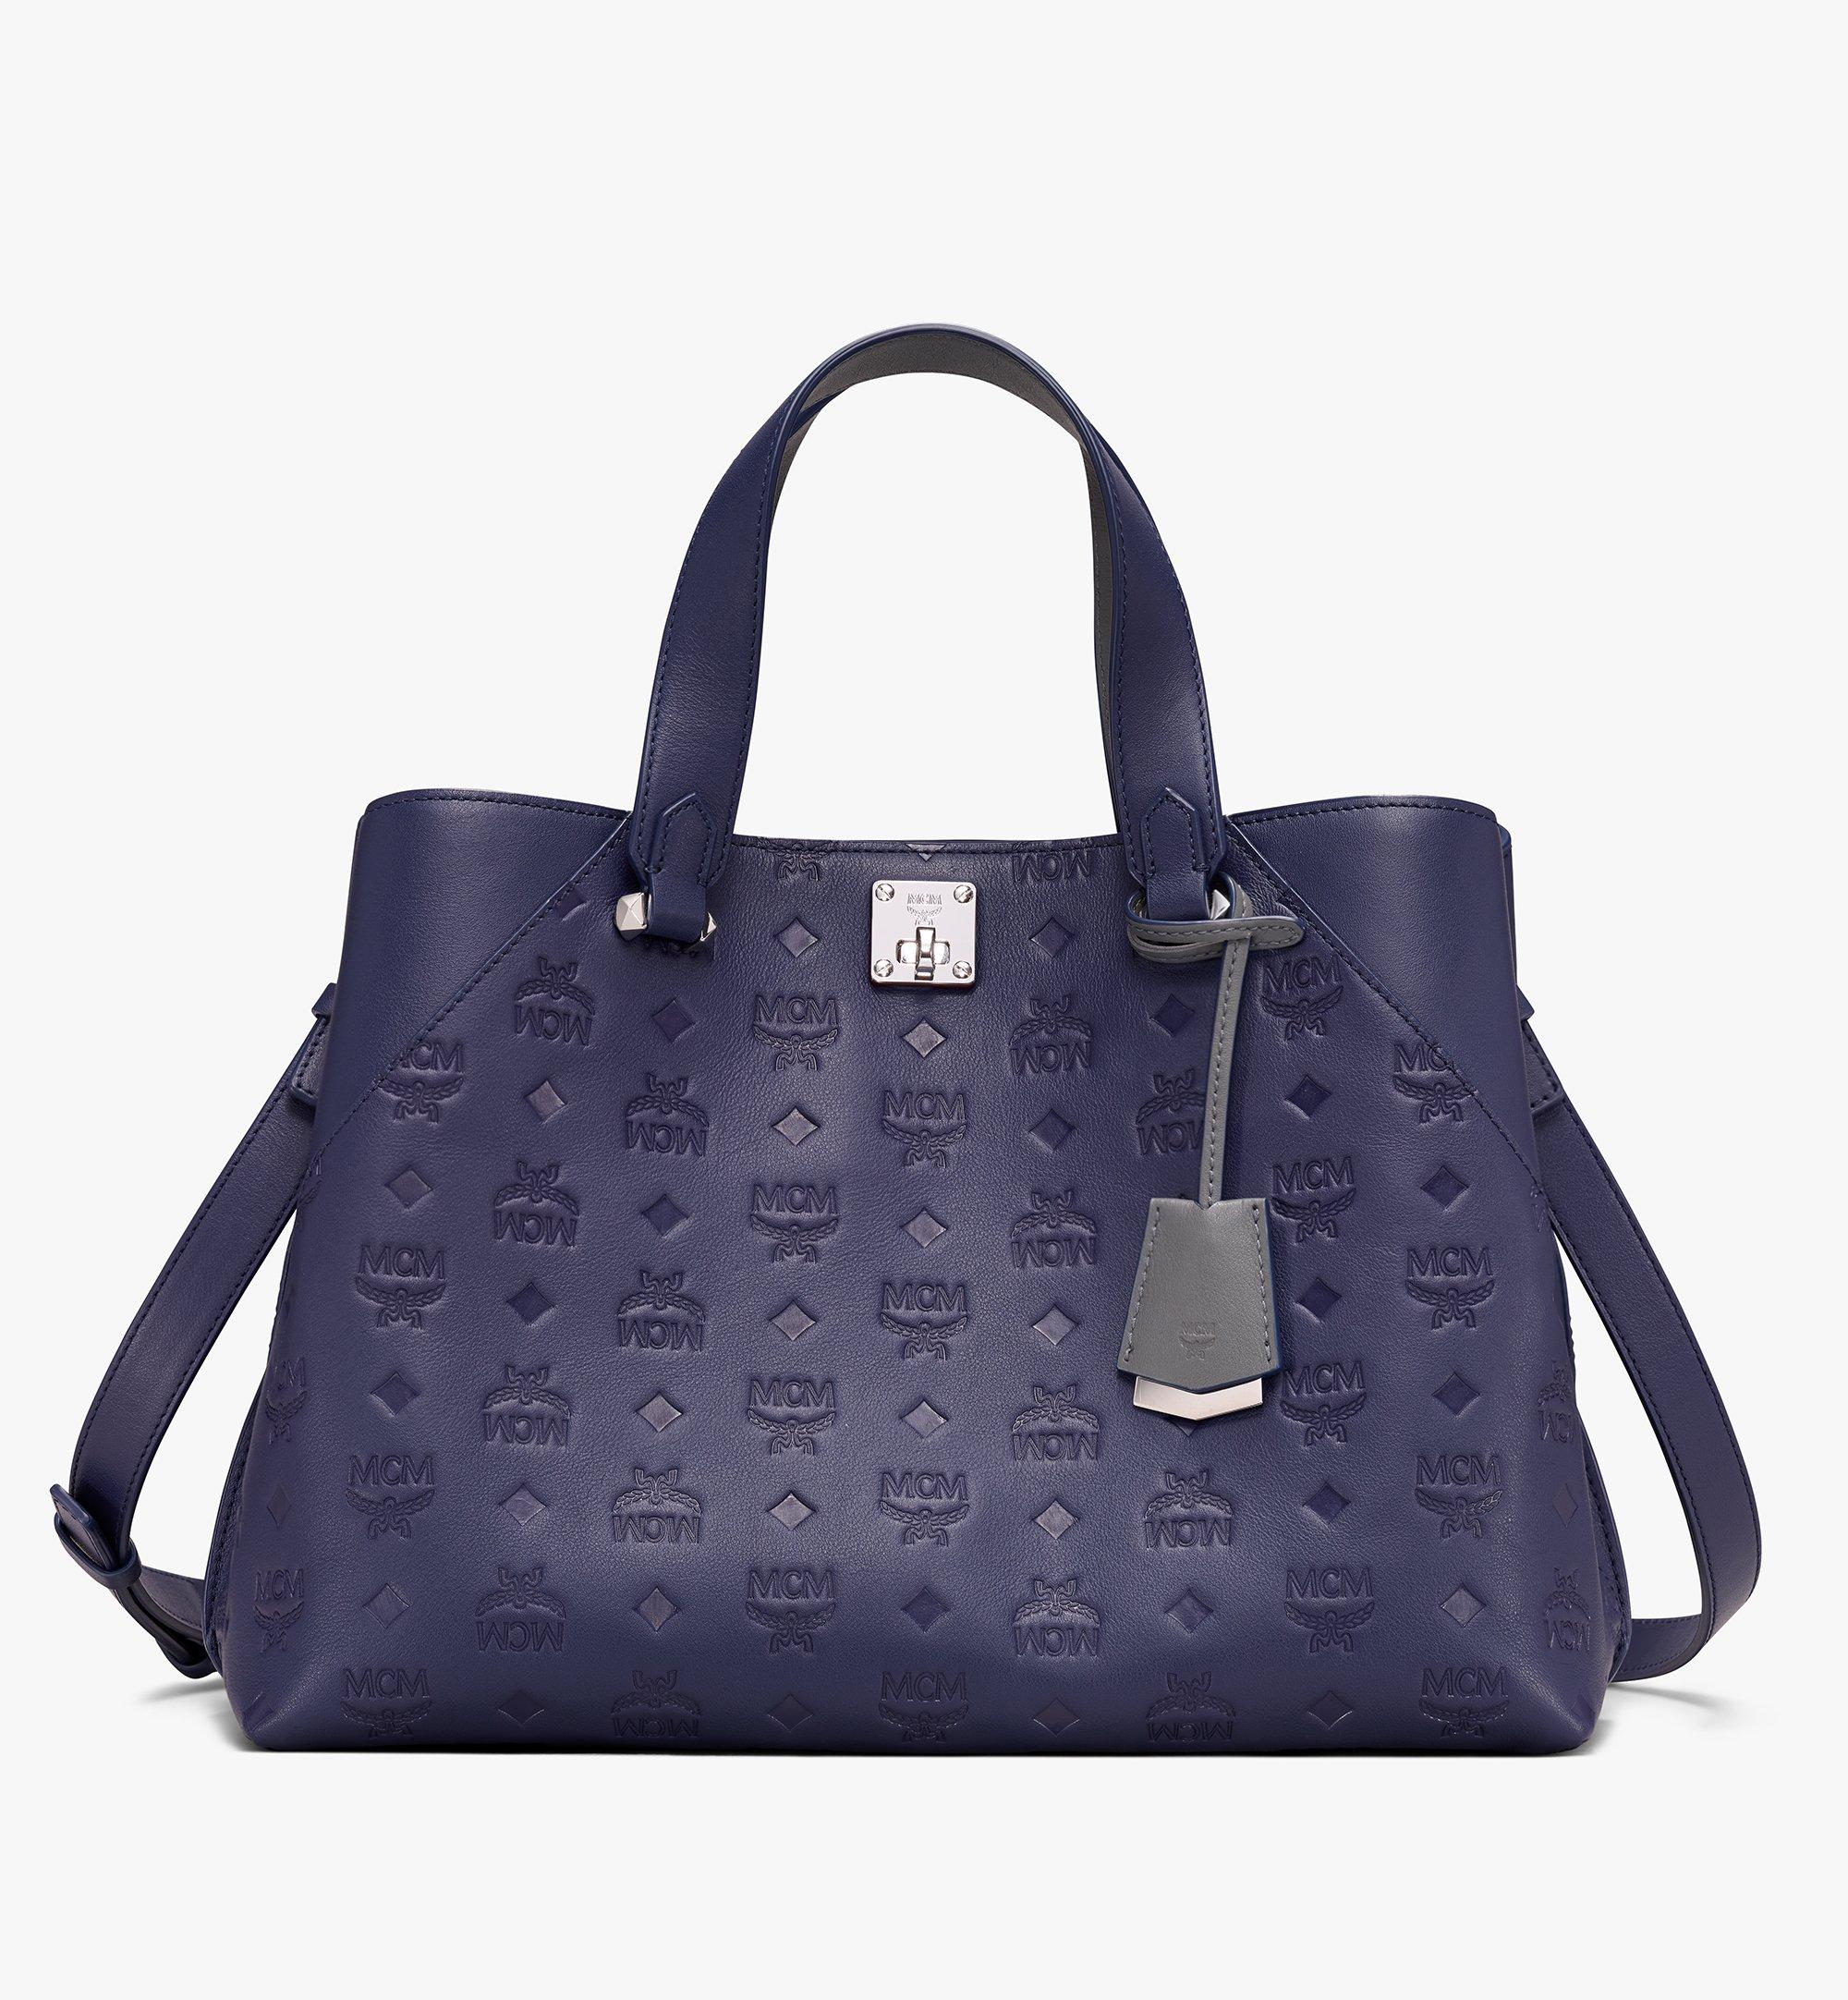 Large Essential Tote Bag in Monogram Leather Navy Blue | MCM® DE